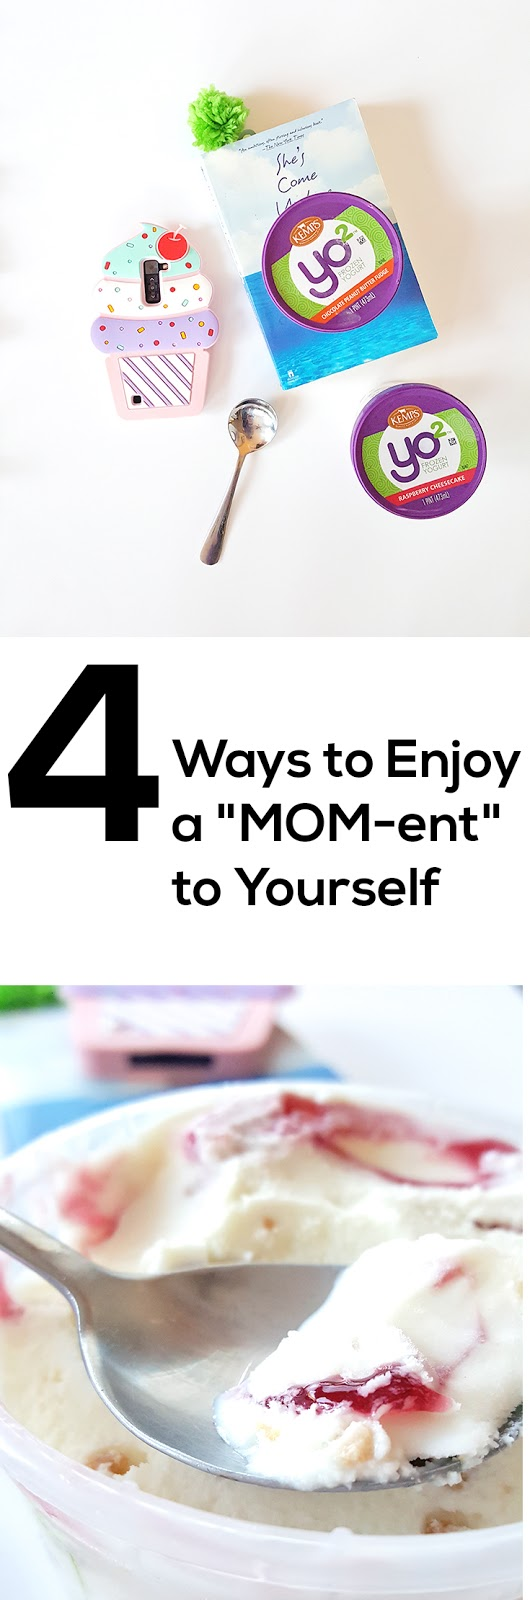 "Taking a moment isn't always easy... but it's so important! Here's four ways you can try and relax and enjoy the ""MOM-ent"" when you have the chance! #yo2 #ItsTheCows"